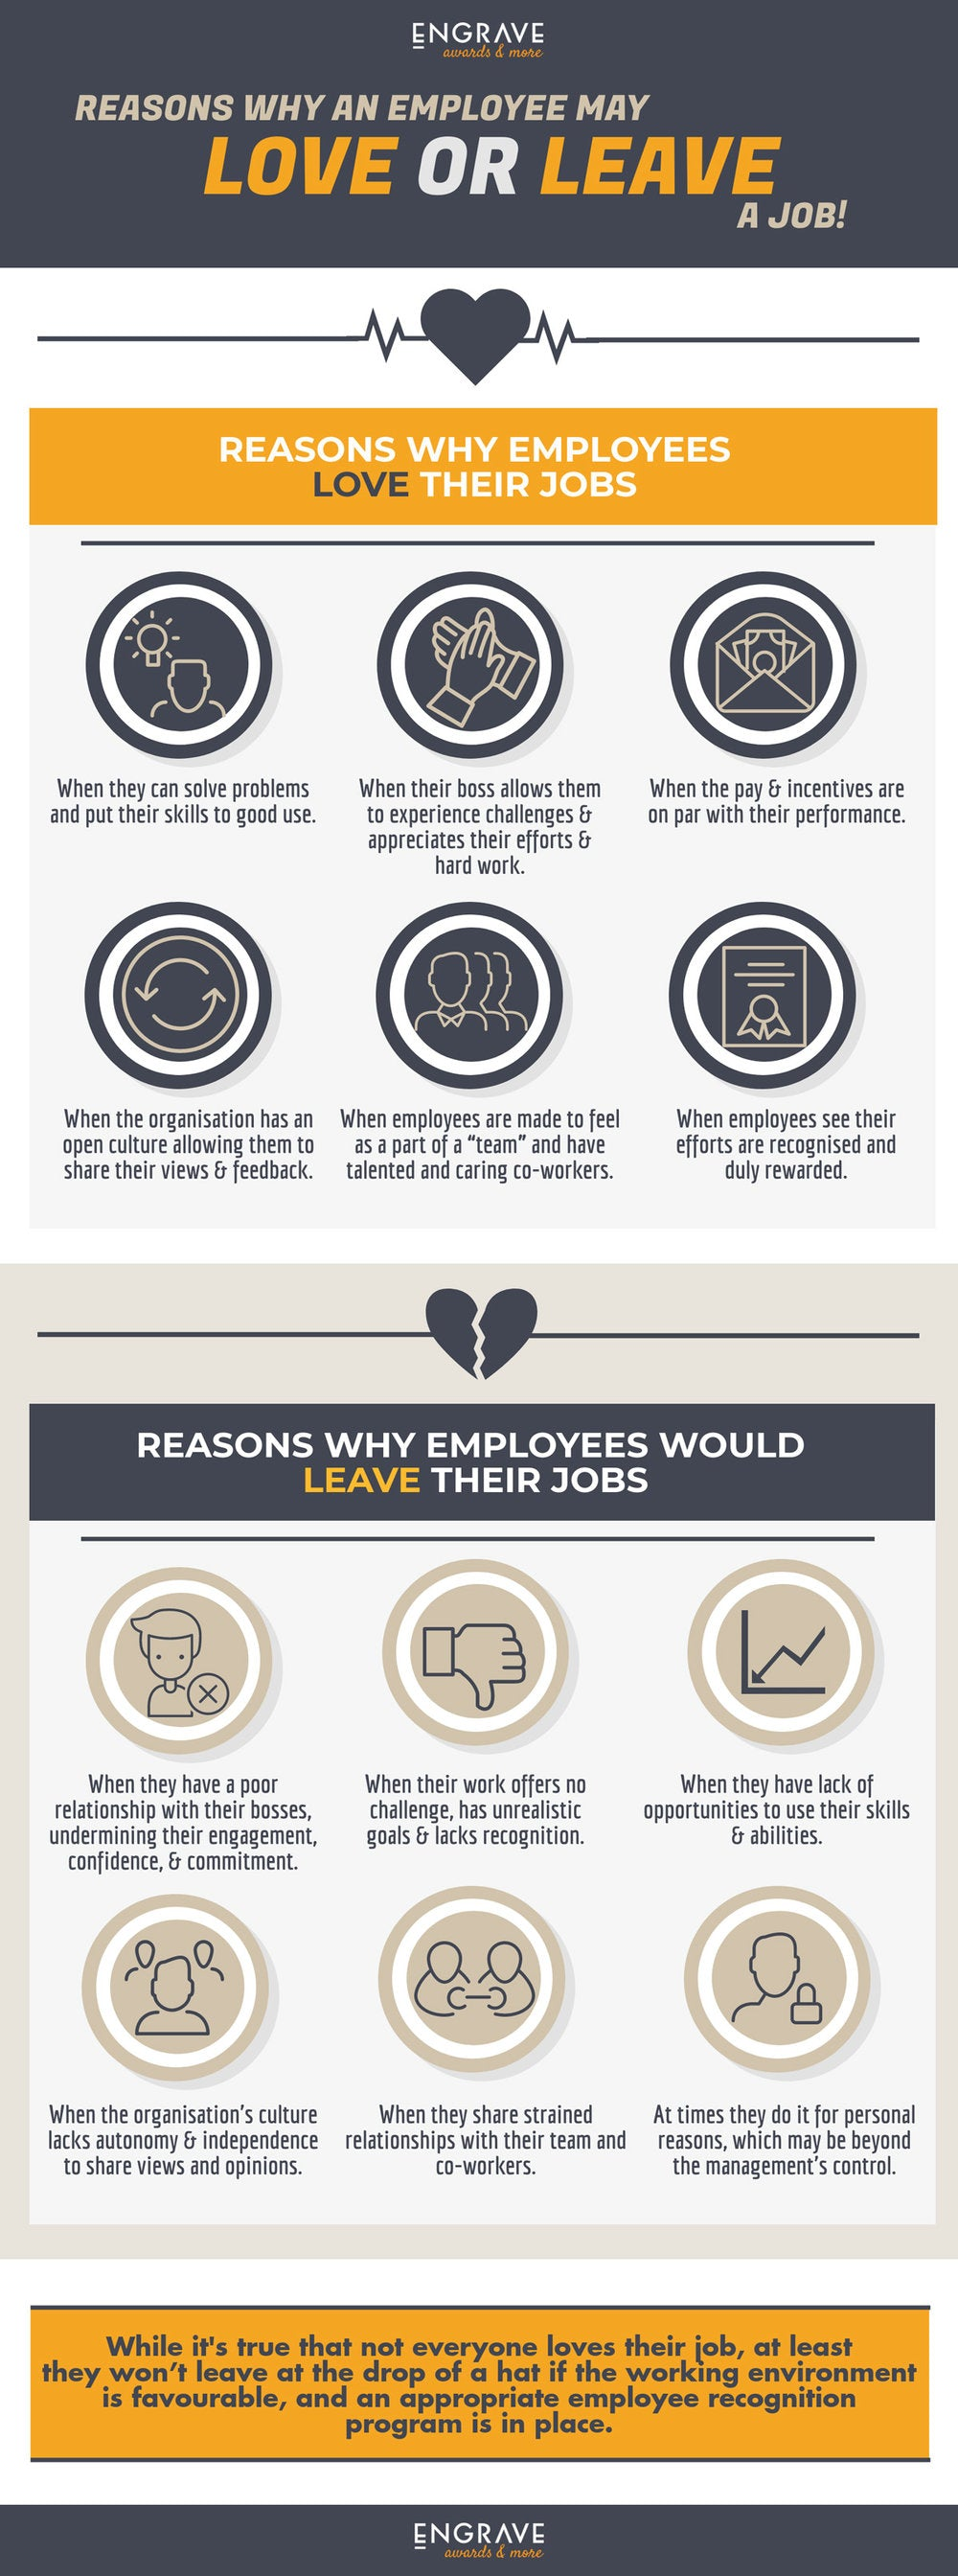 Reasons Why An Employee May Love Or Leave A Job!